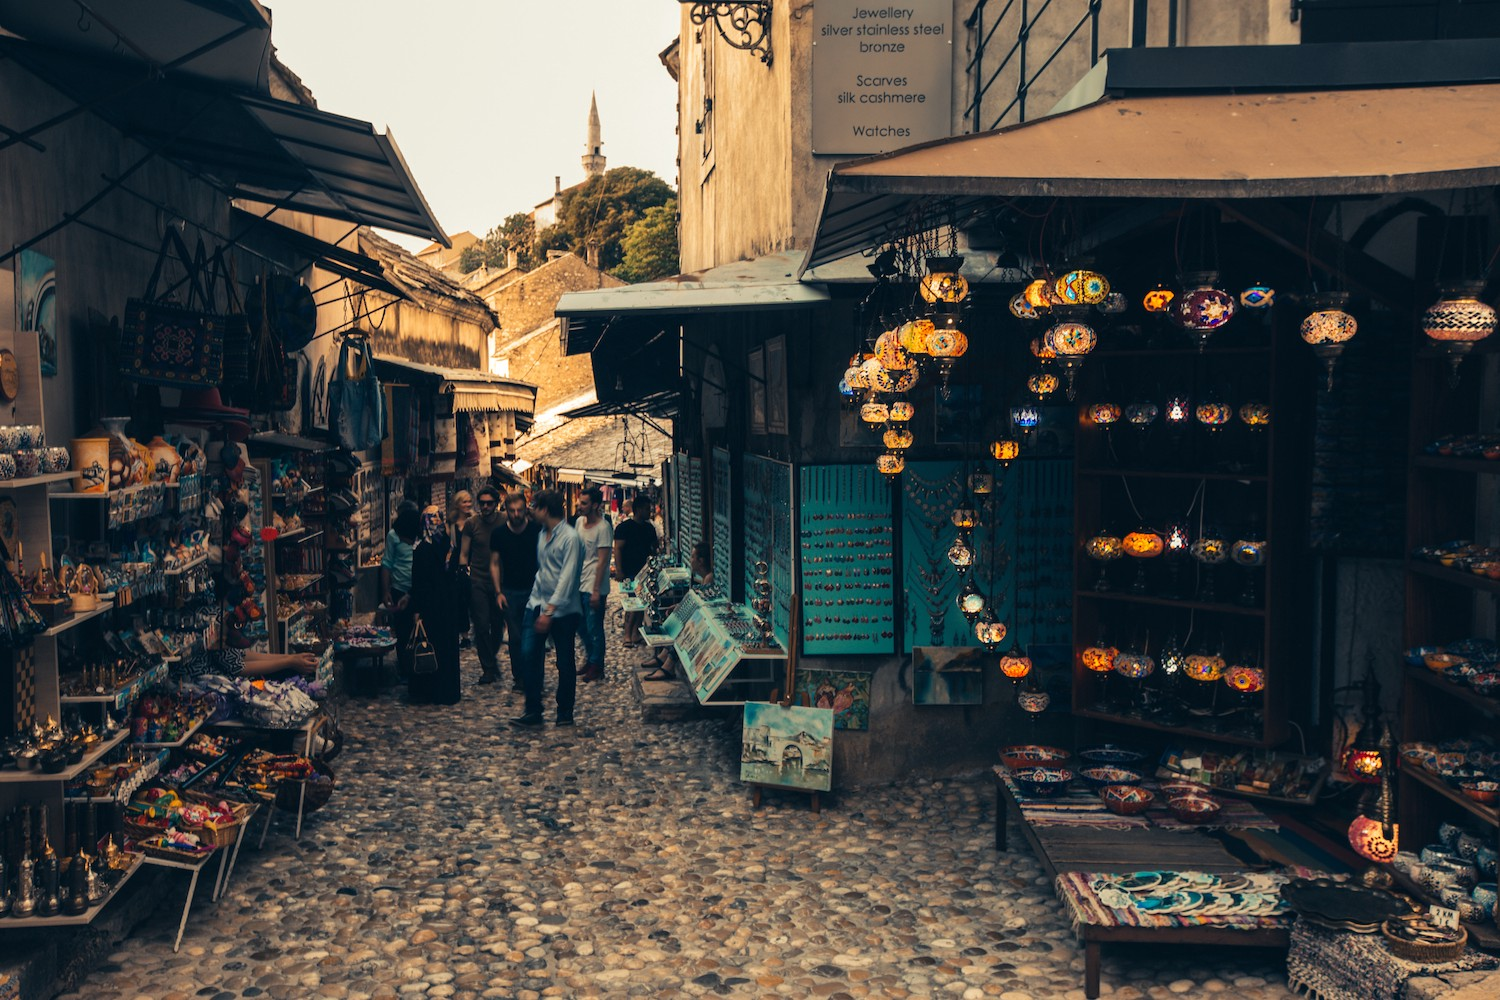 Bazaar on the Eastern side of Stari Most in Mostar.